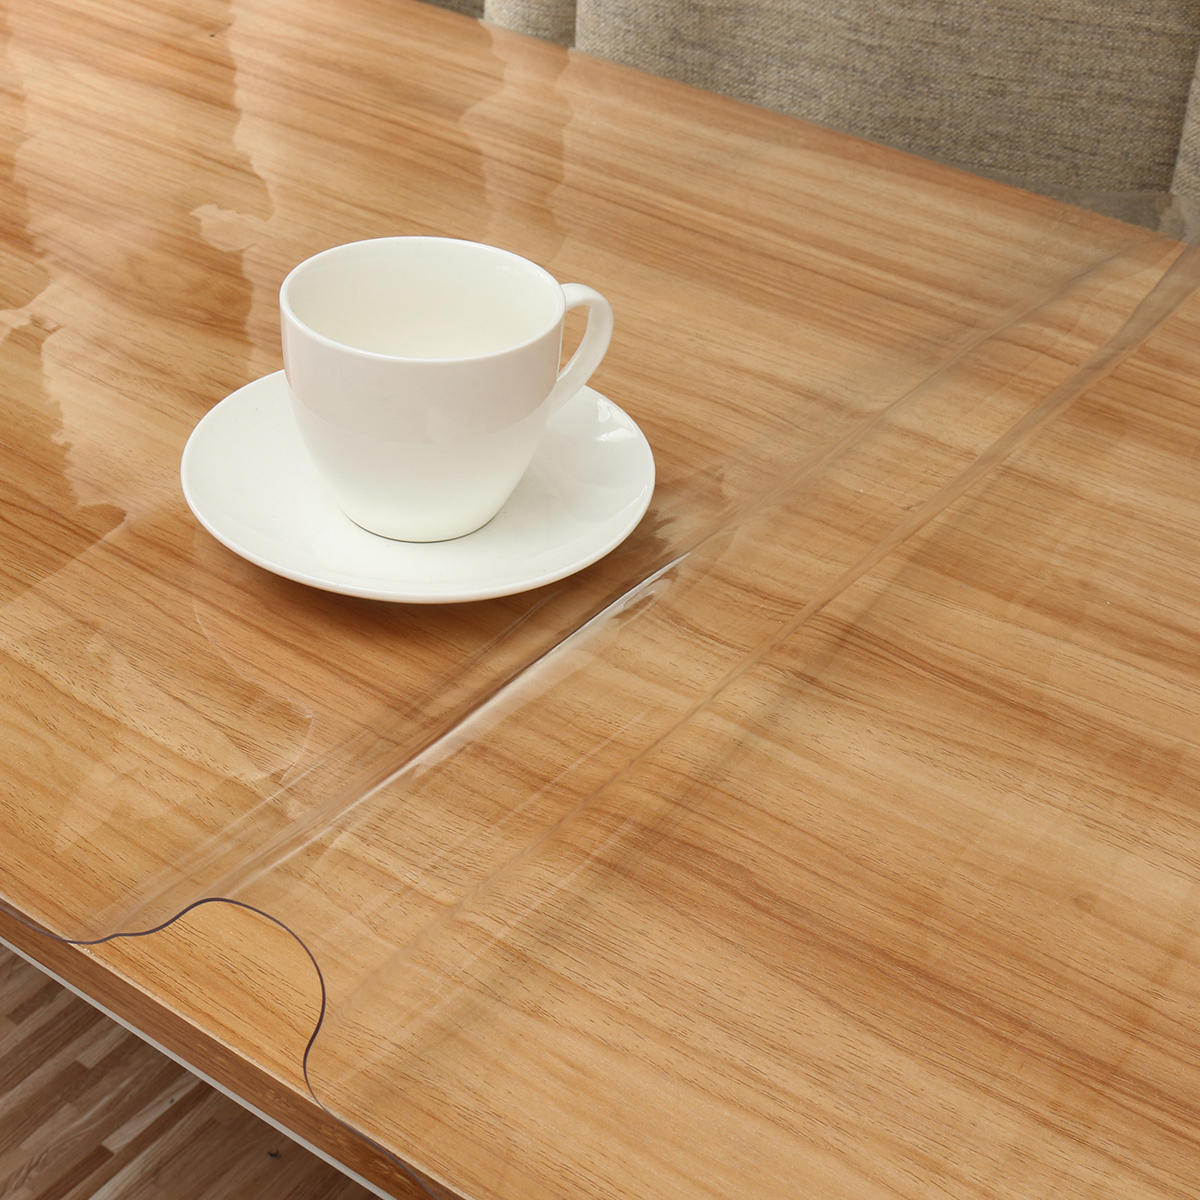 PVC Wipe Clean Transparent Tablecloth Mat Glass Effect Table Protection